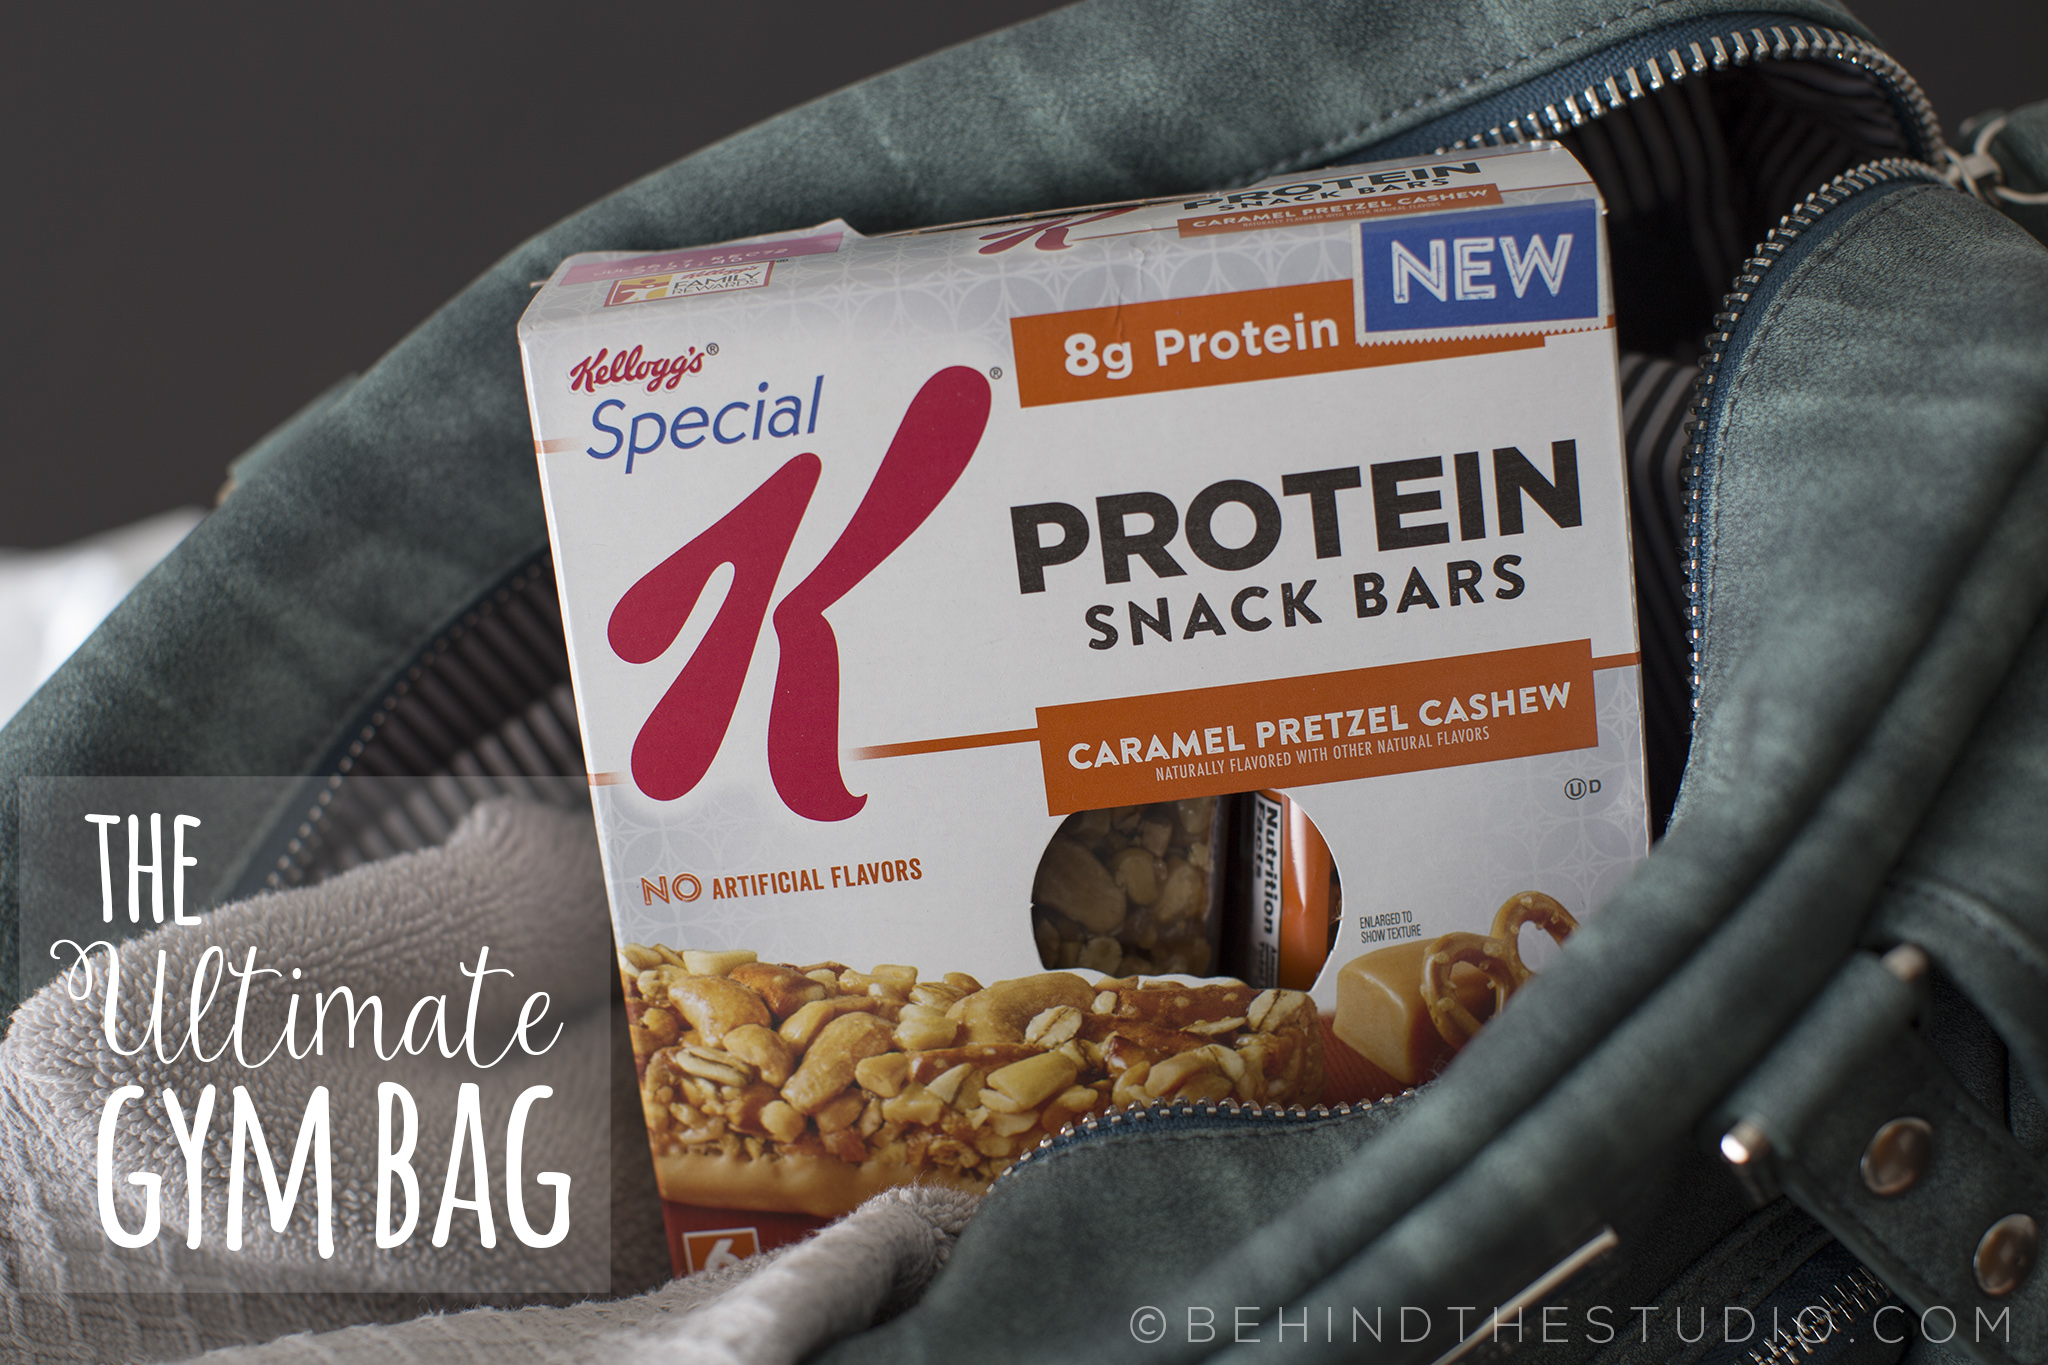 Save on Kellogg's Special K at Target with the Cartwheel offer! #SpecialKGoodness #AD #CBIAS